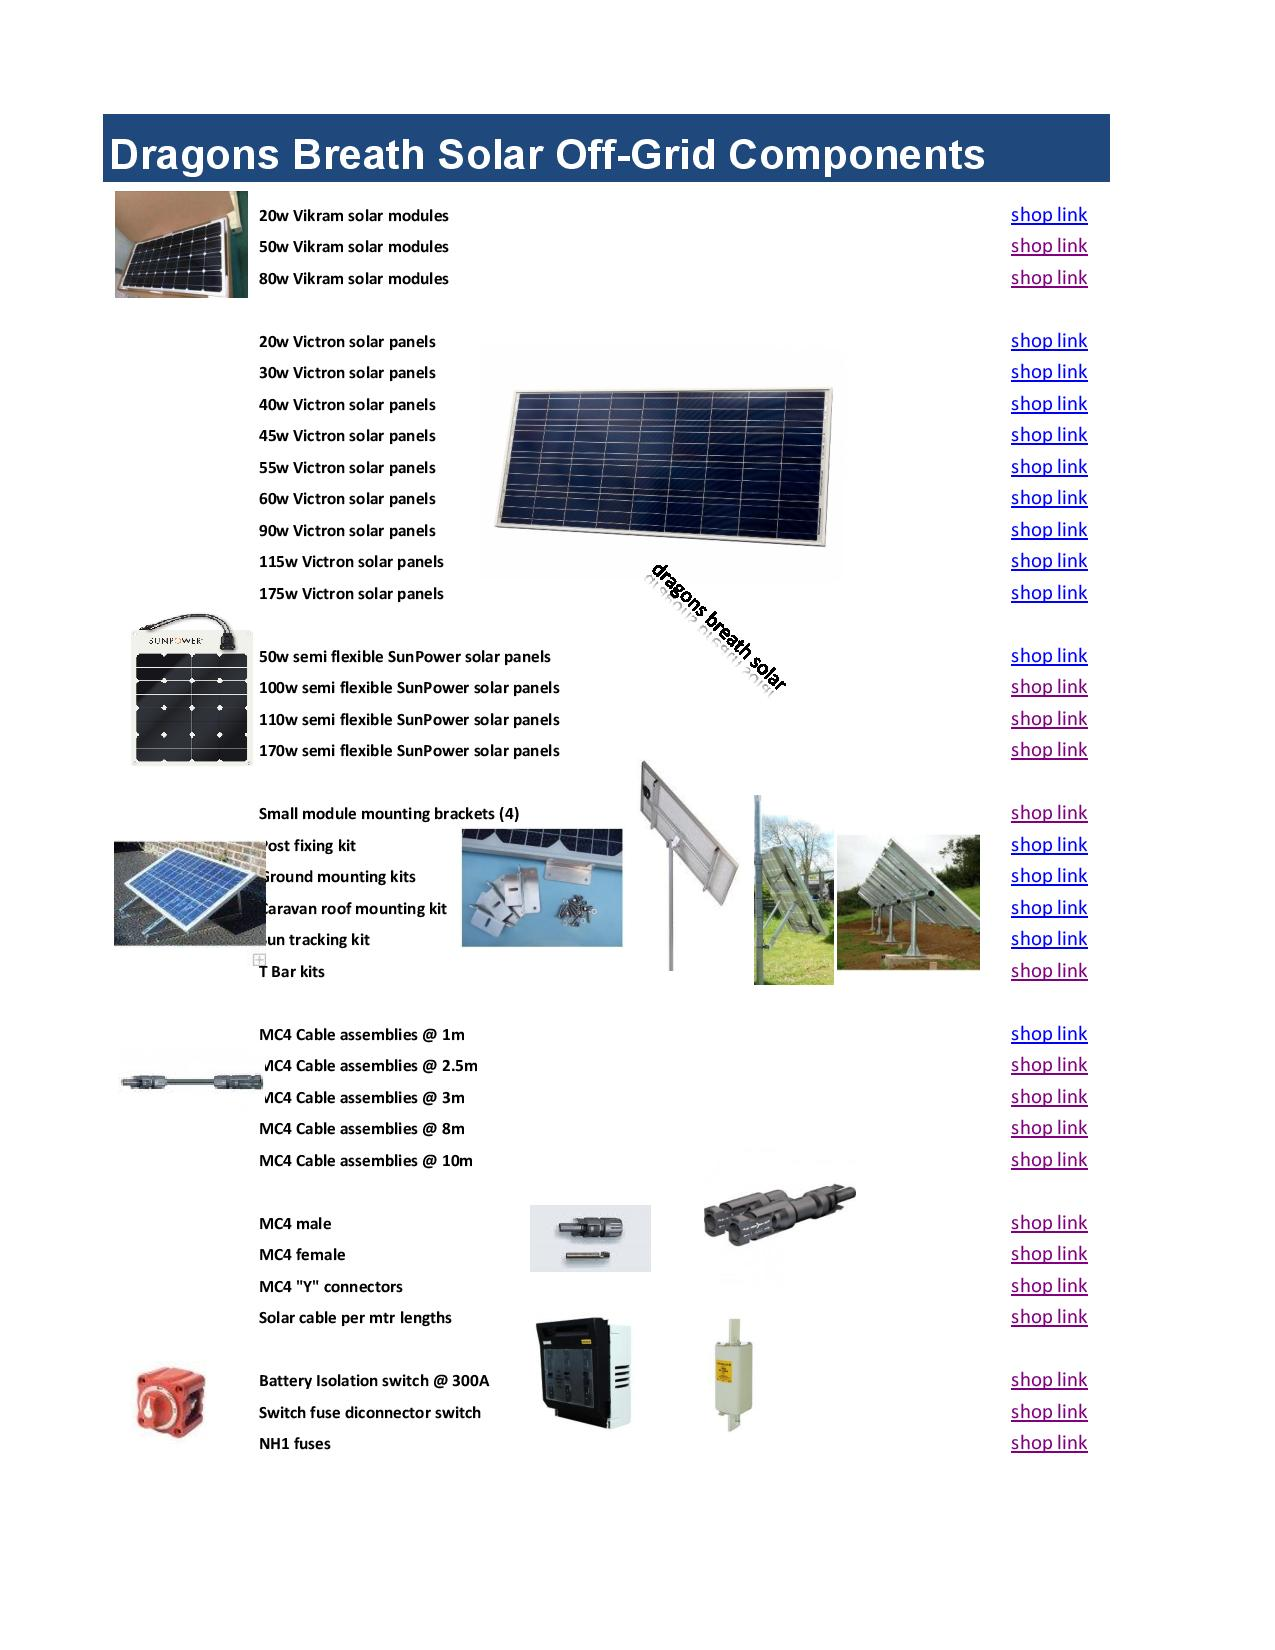 Off grid solar components list of parts